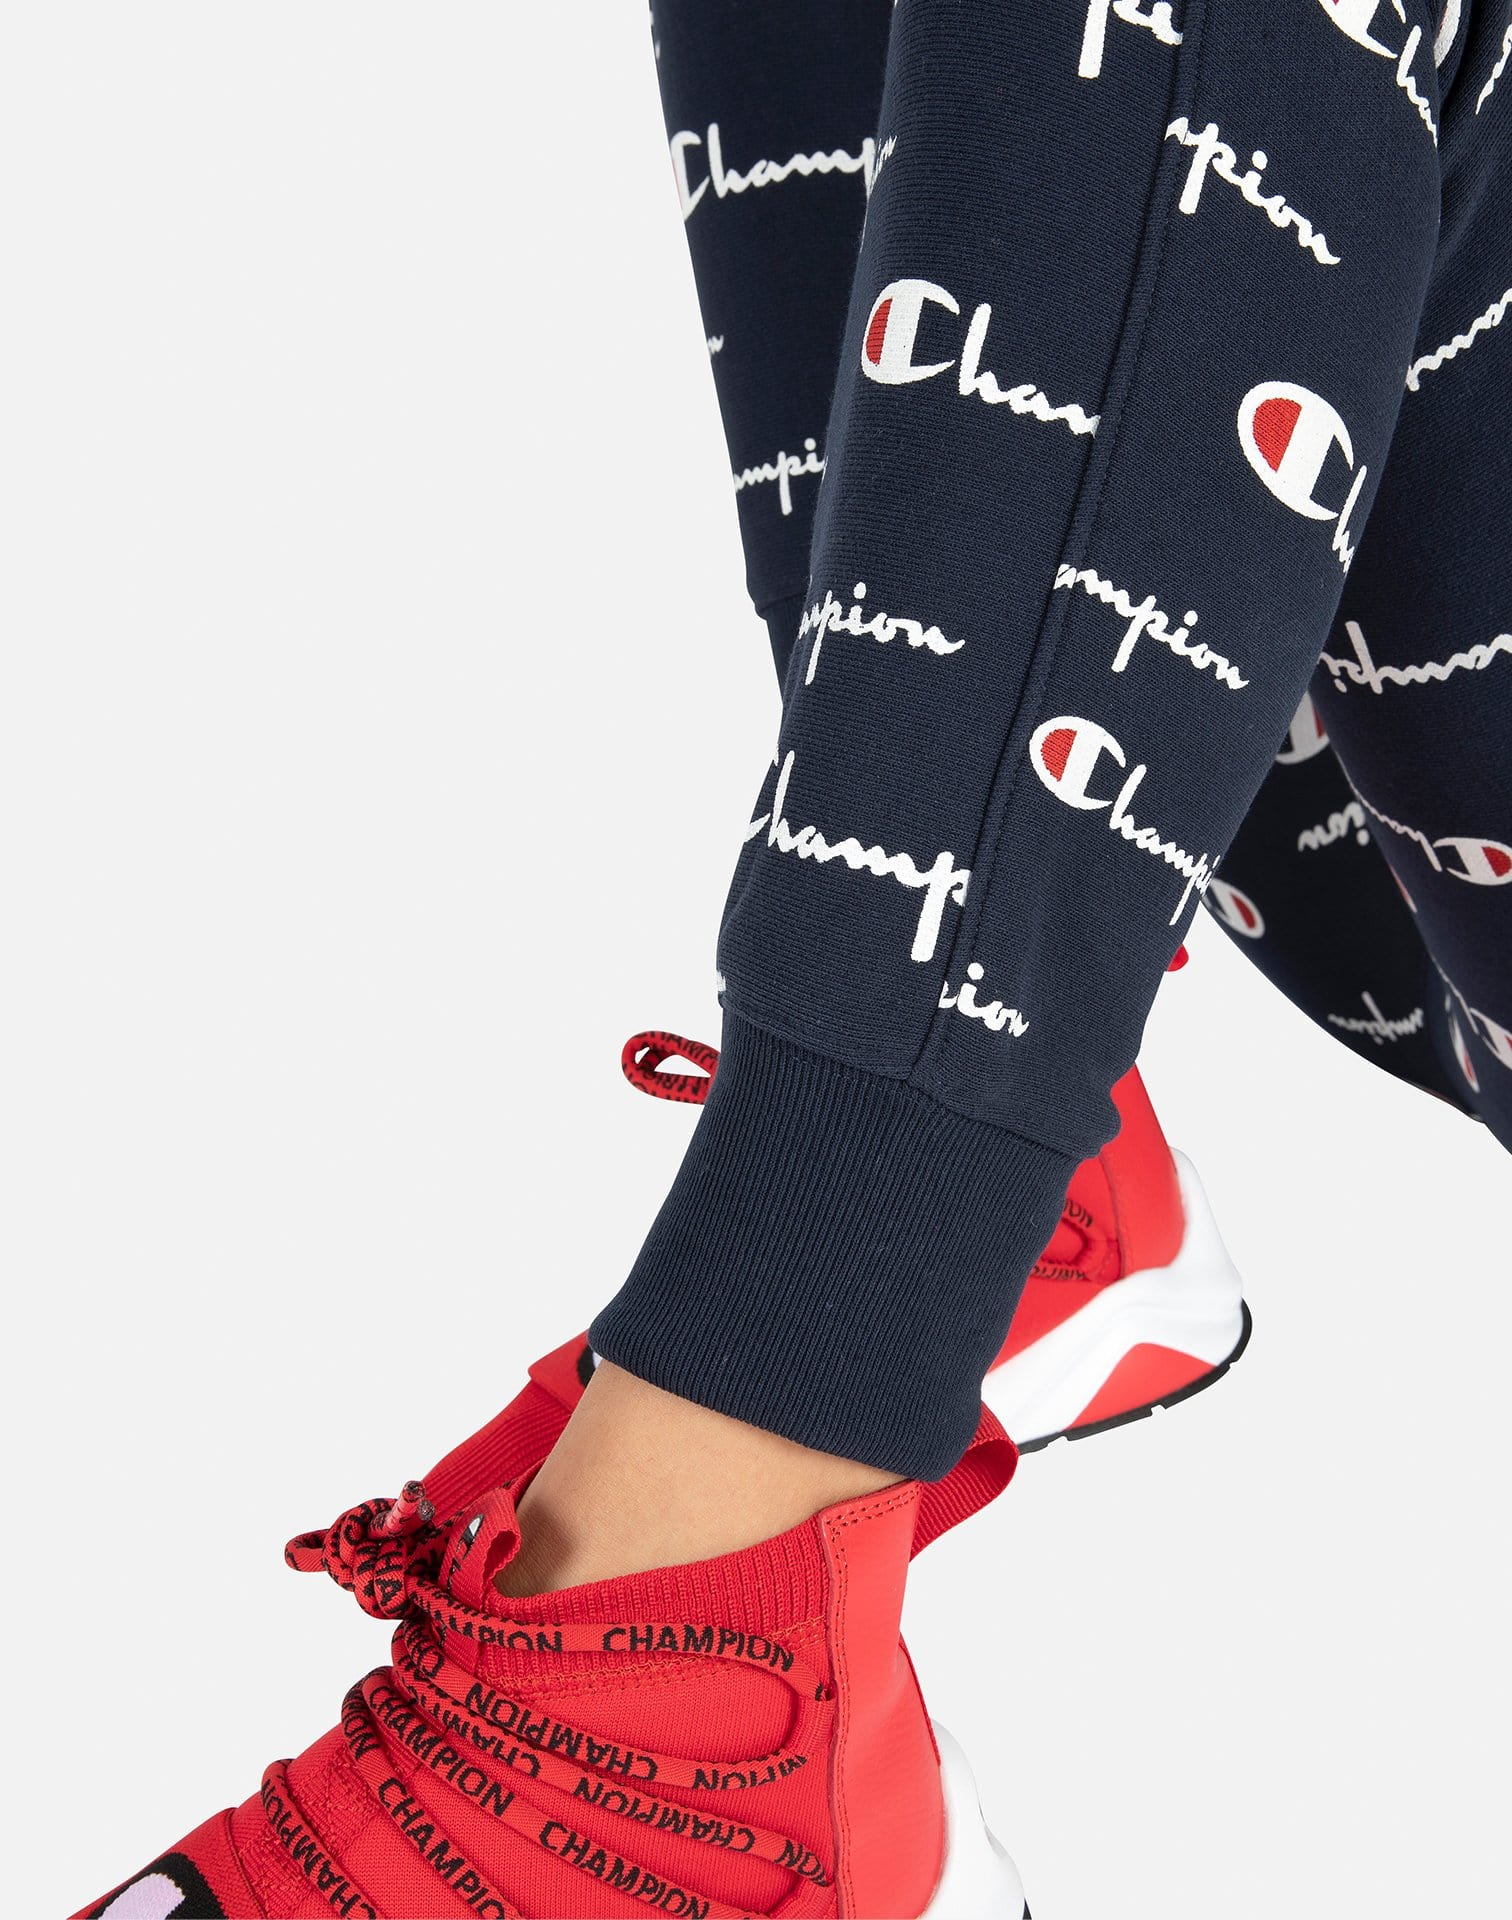 Champion Women's All-Over Print Jogger Pants